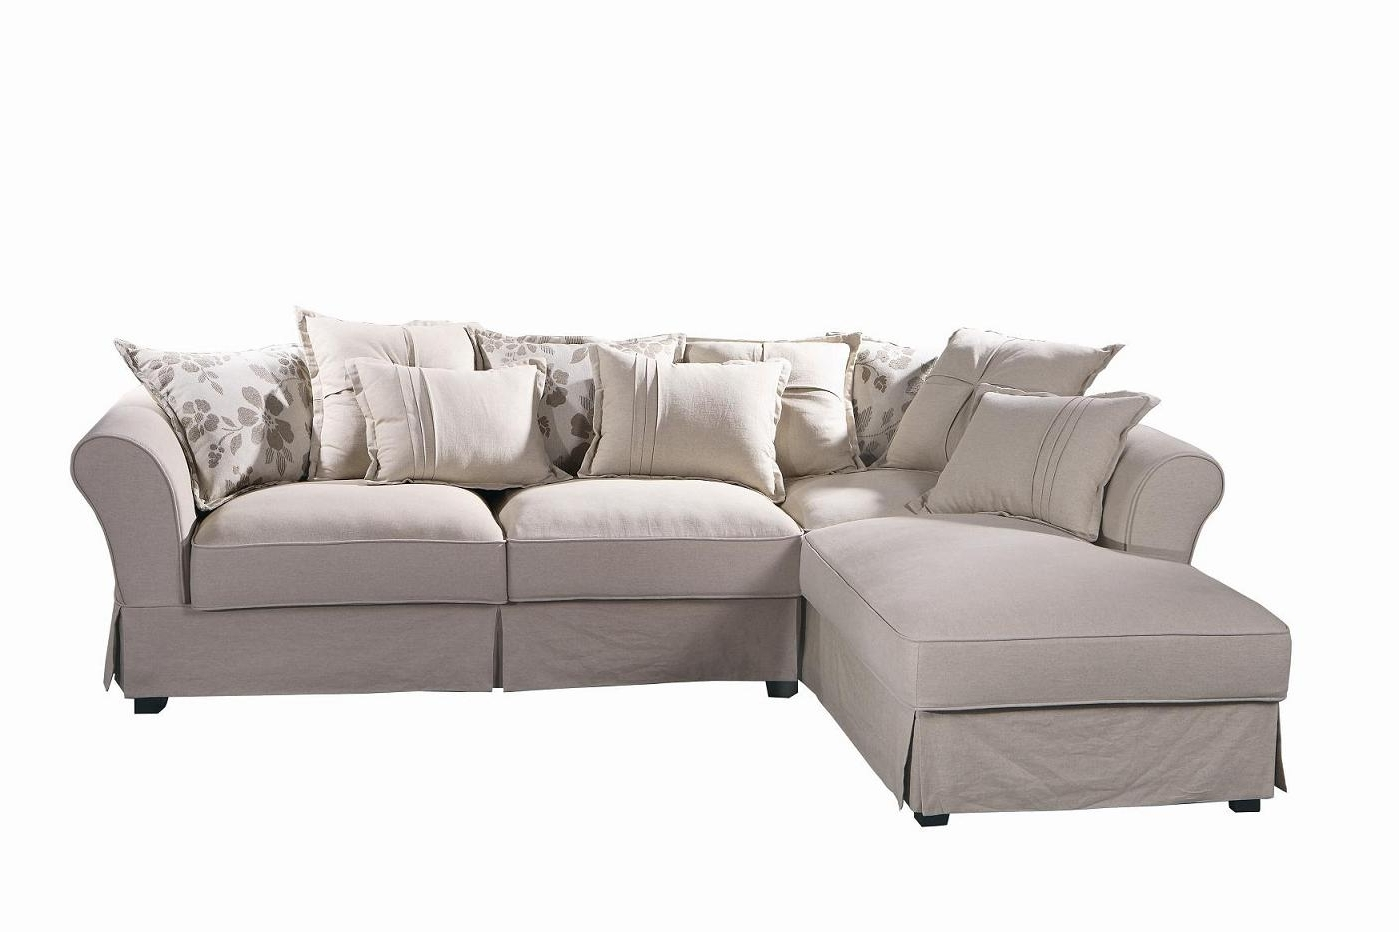 Affordable Sectional Sofas With Regard To Most Recently Released Uncategorized (View 7 of 20)